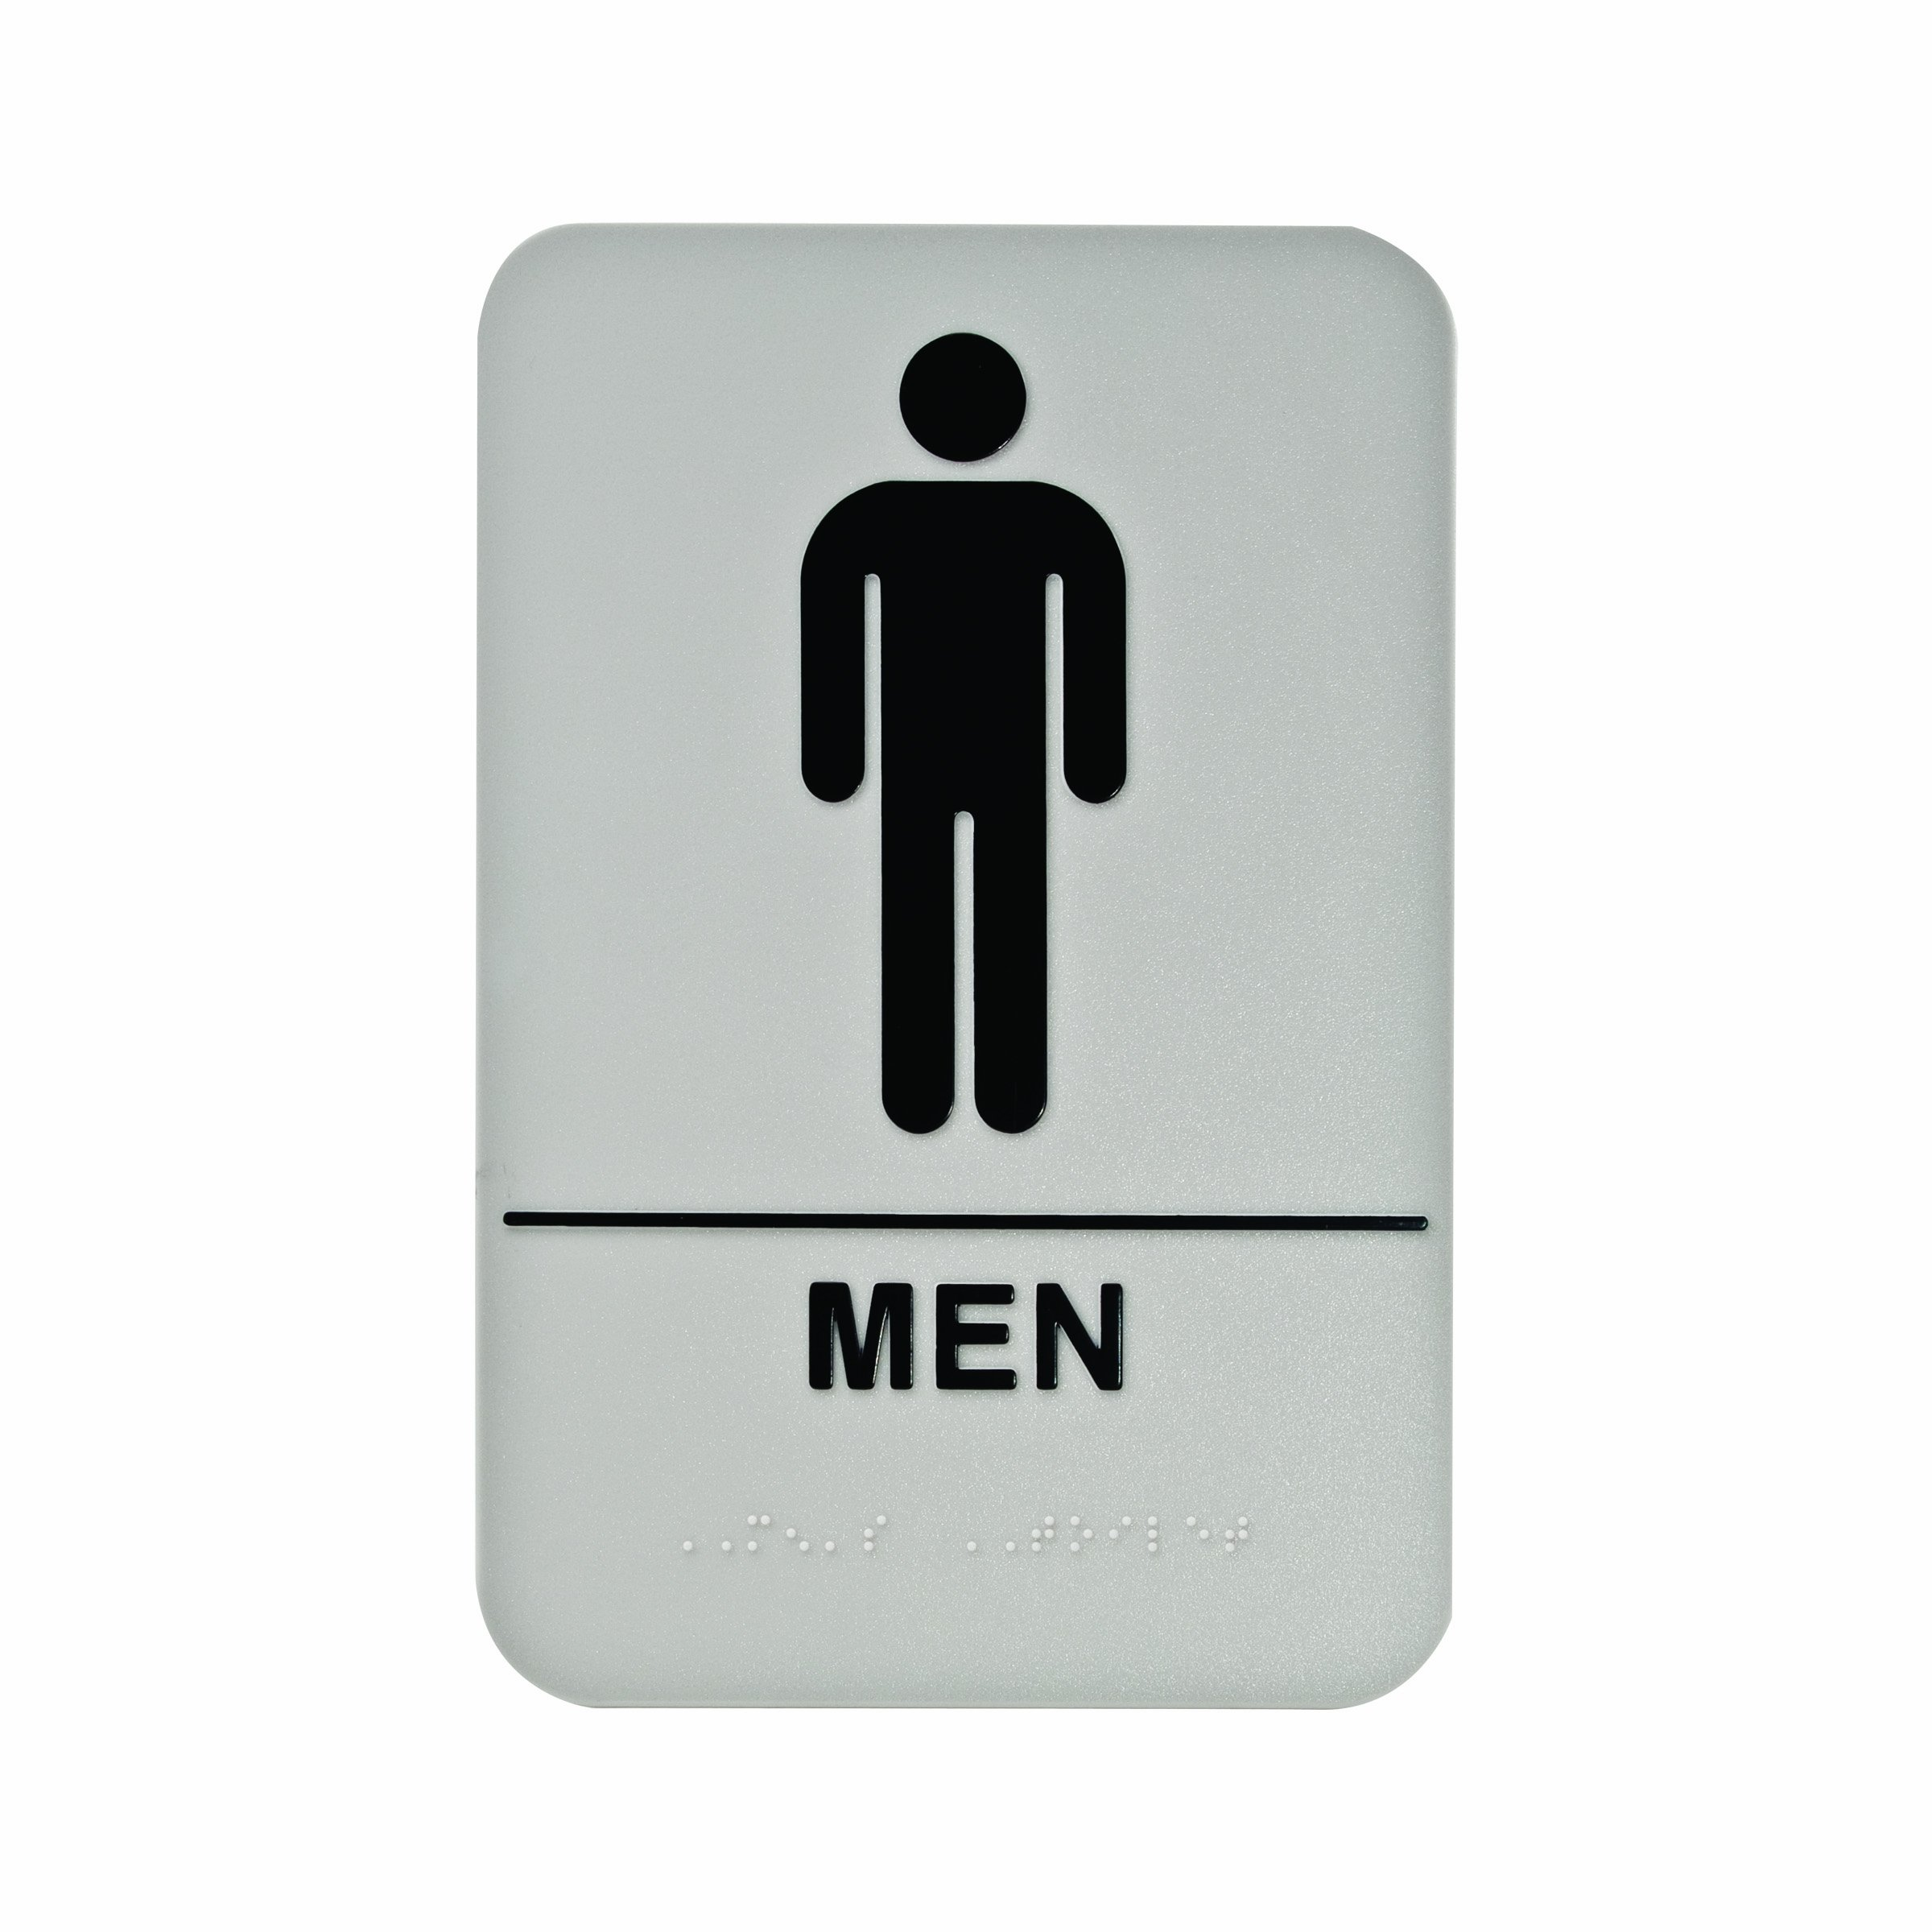 Male Bathroom Symbol.